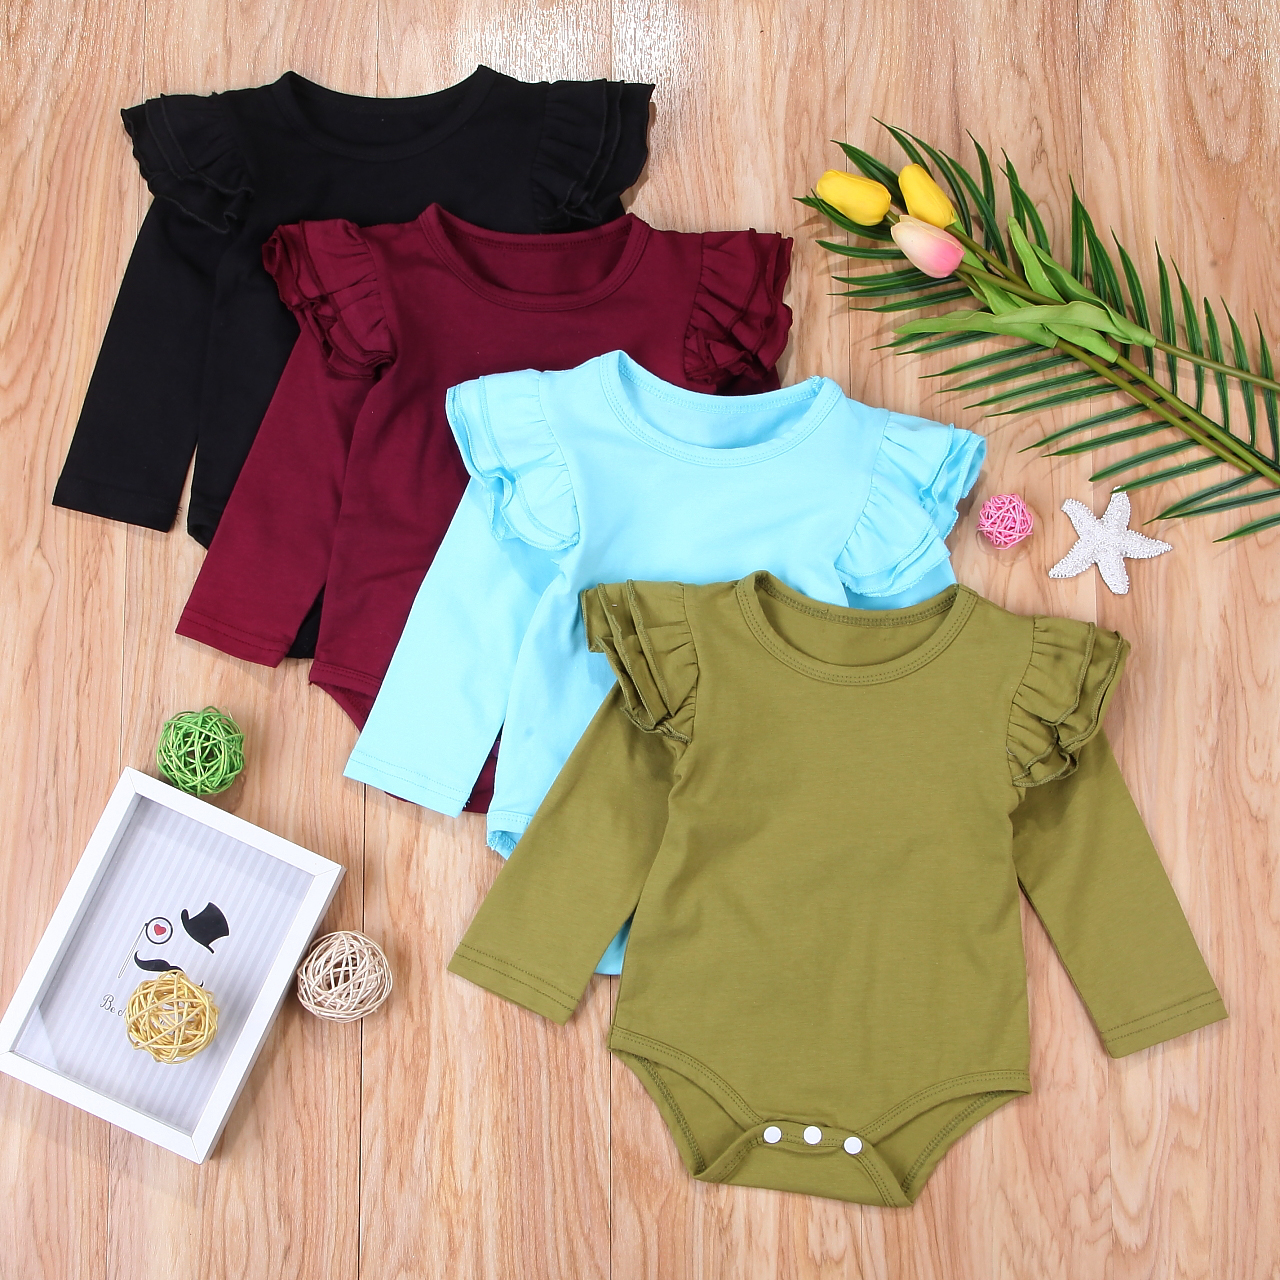 2018 Newborn Toddler Baby Girls Summer Long Sleeves Bodysuit Long Ruffle Sleeve Outfits Solid Jumpsuit Casual Clothing SS